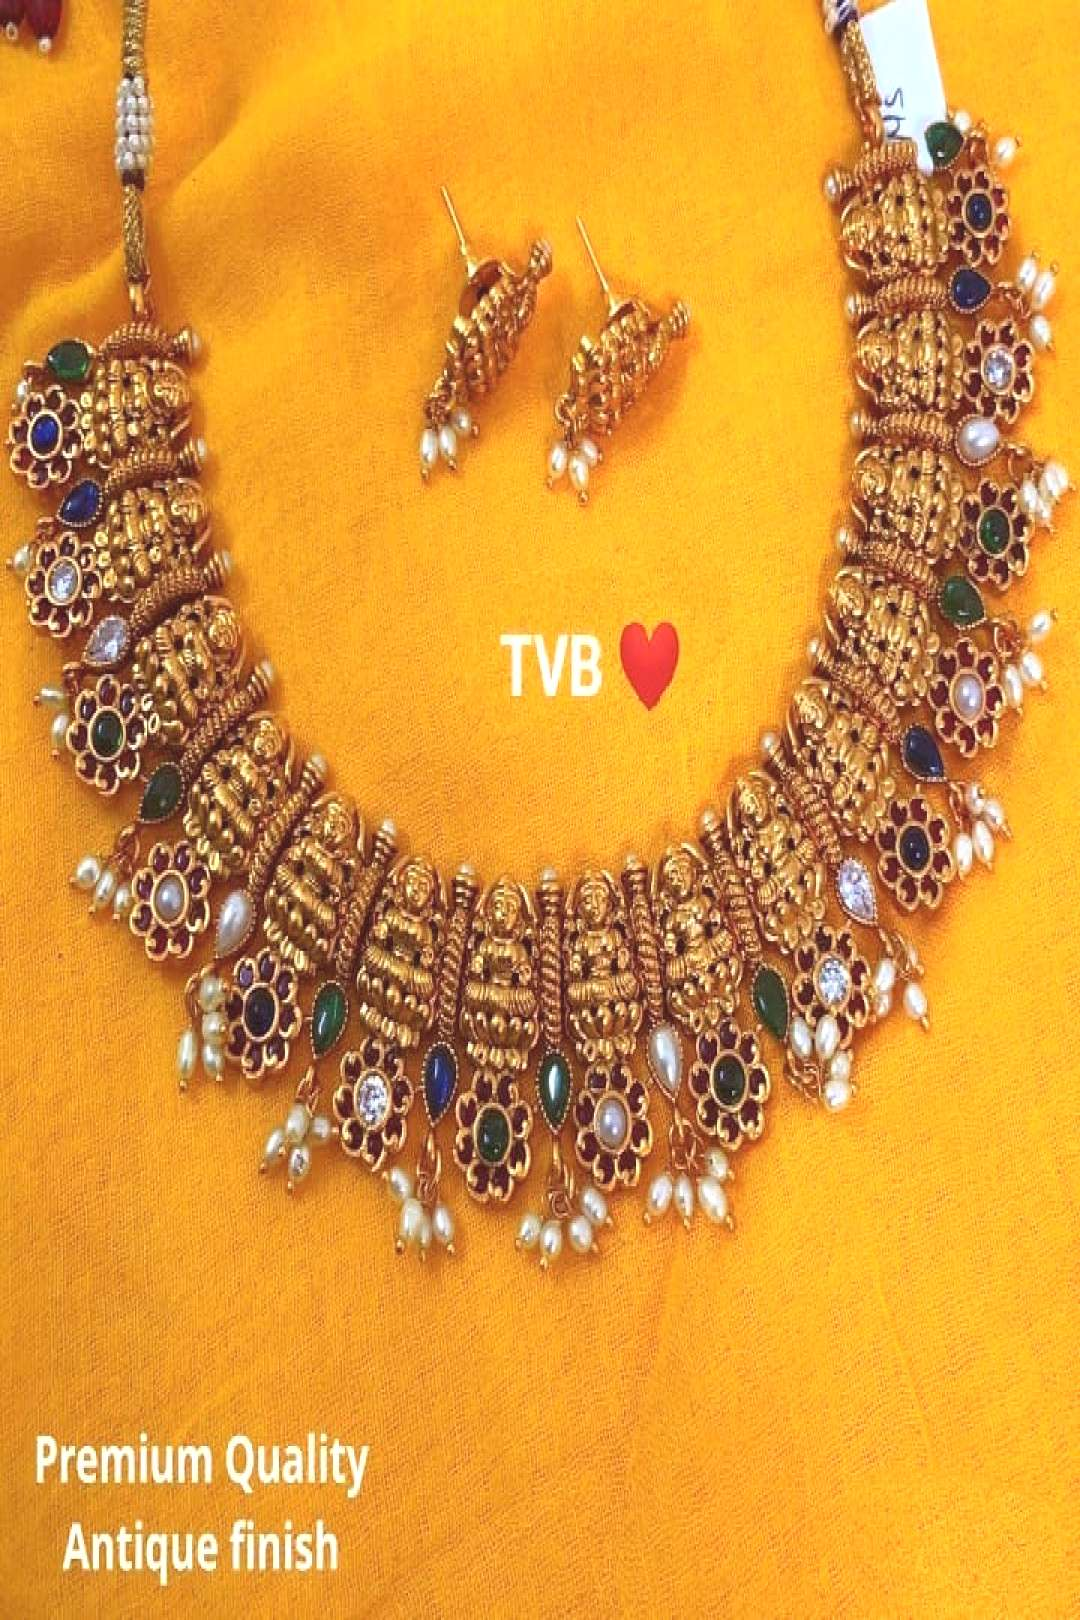 THE VELVET BOX on June 01 2020 jewelry text that says TVB Premium